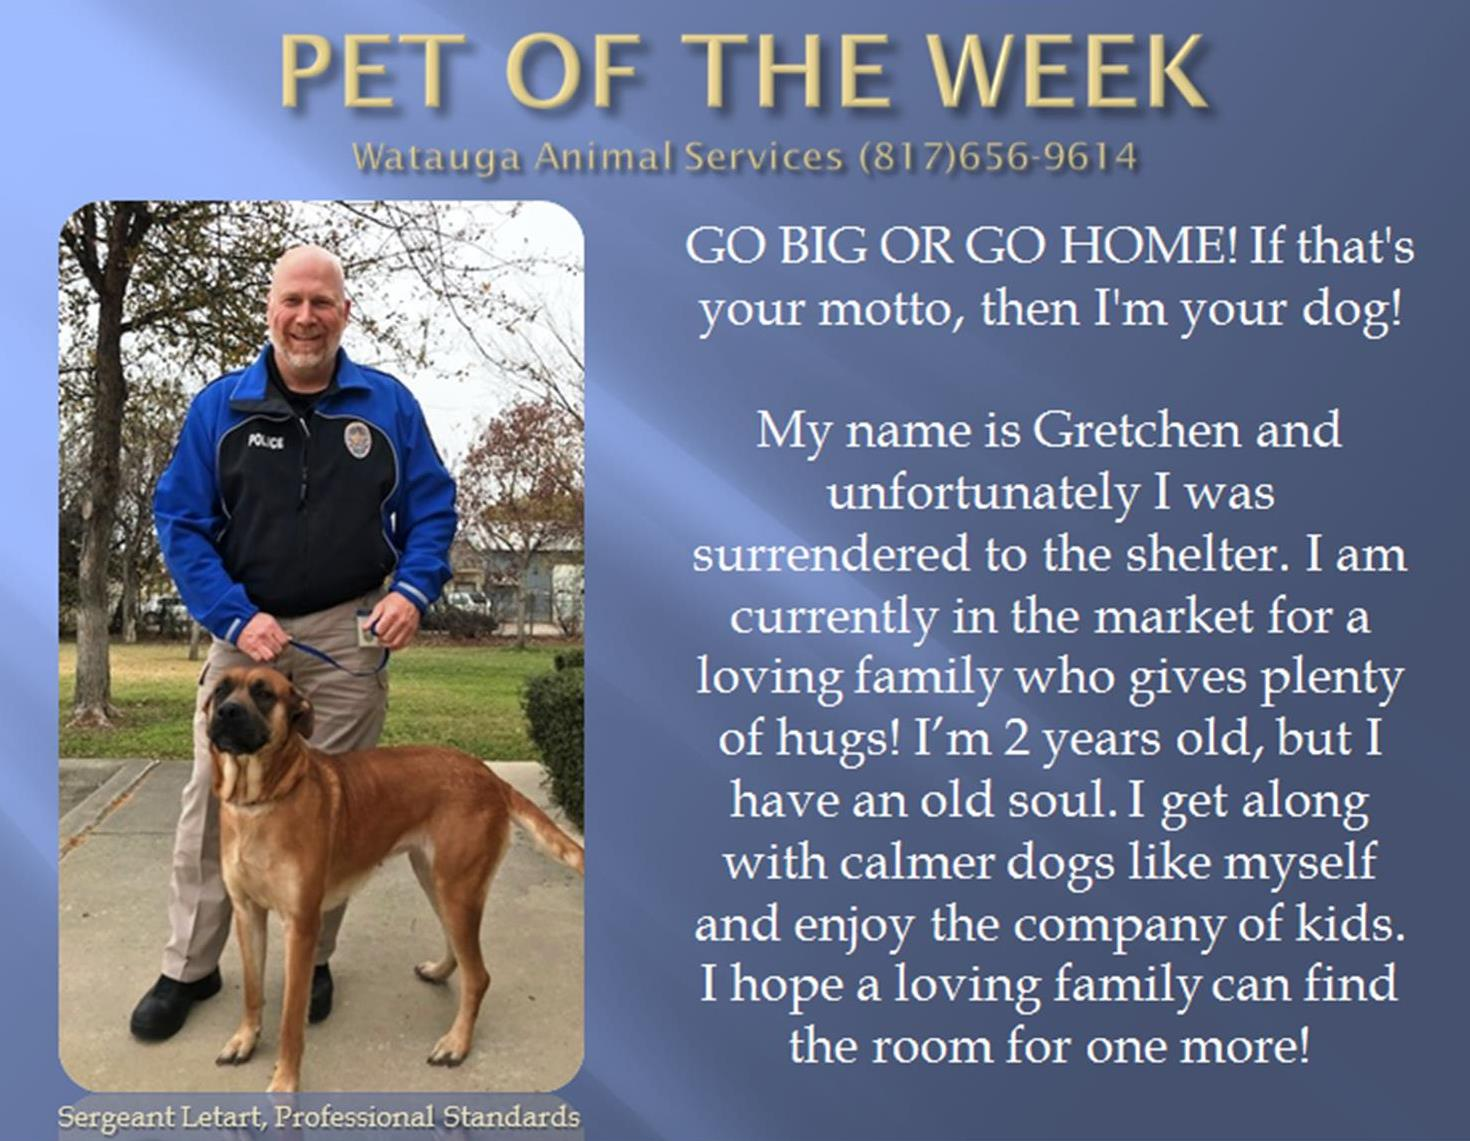 Pet of the Week - Letart